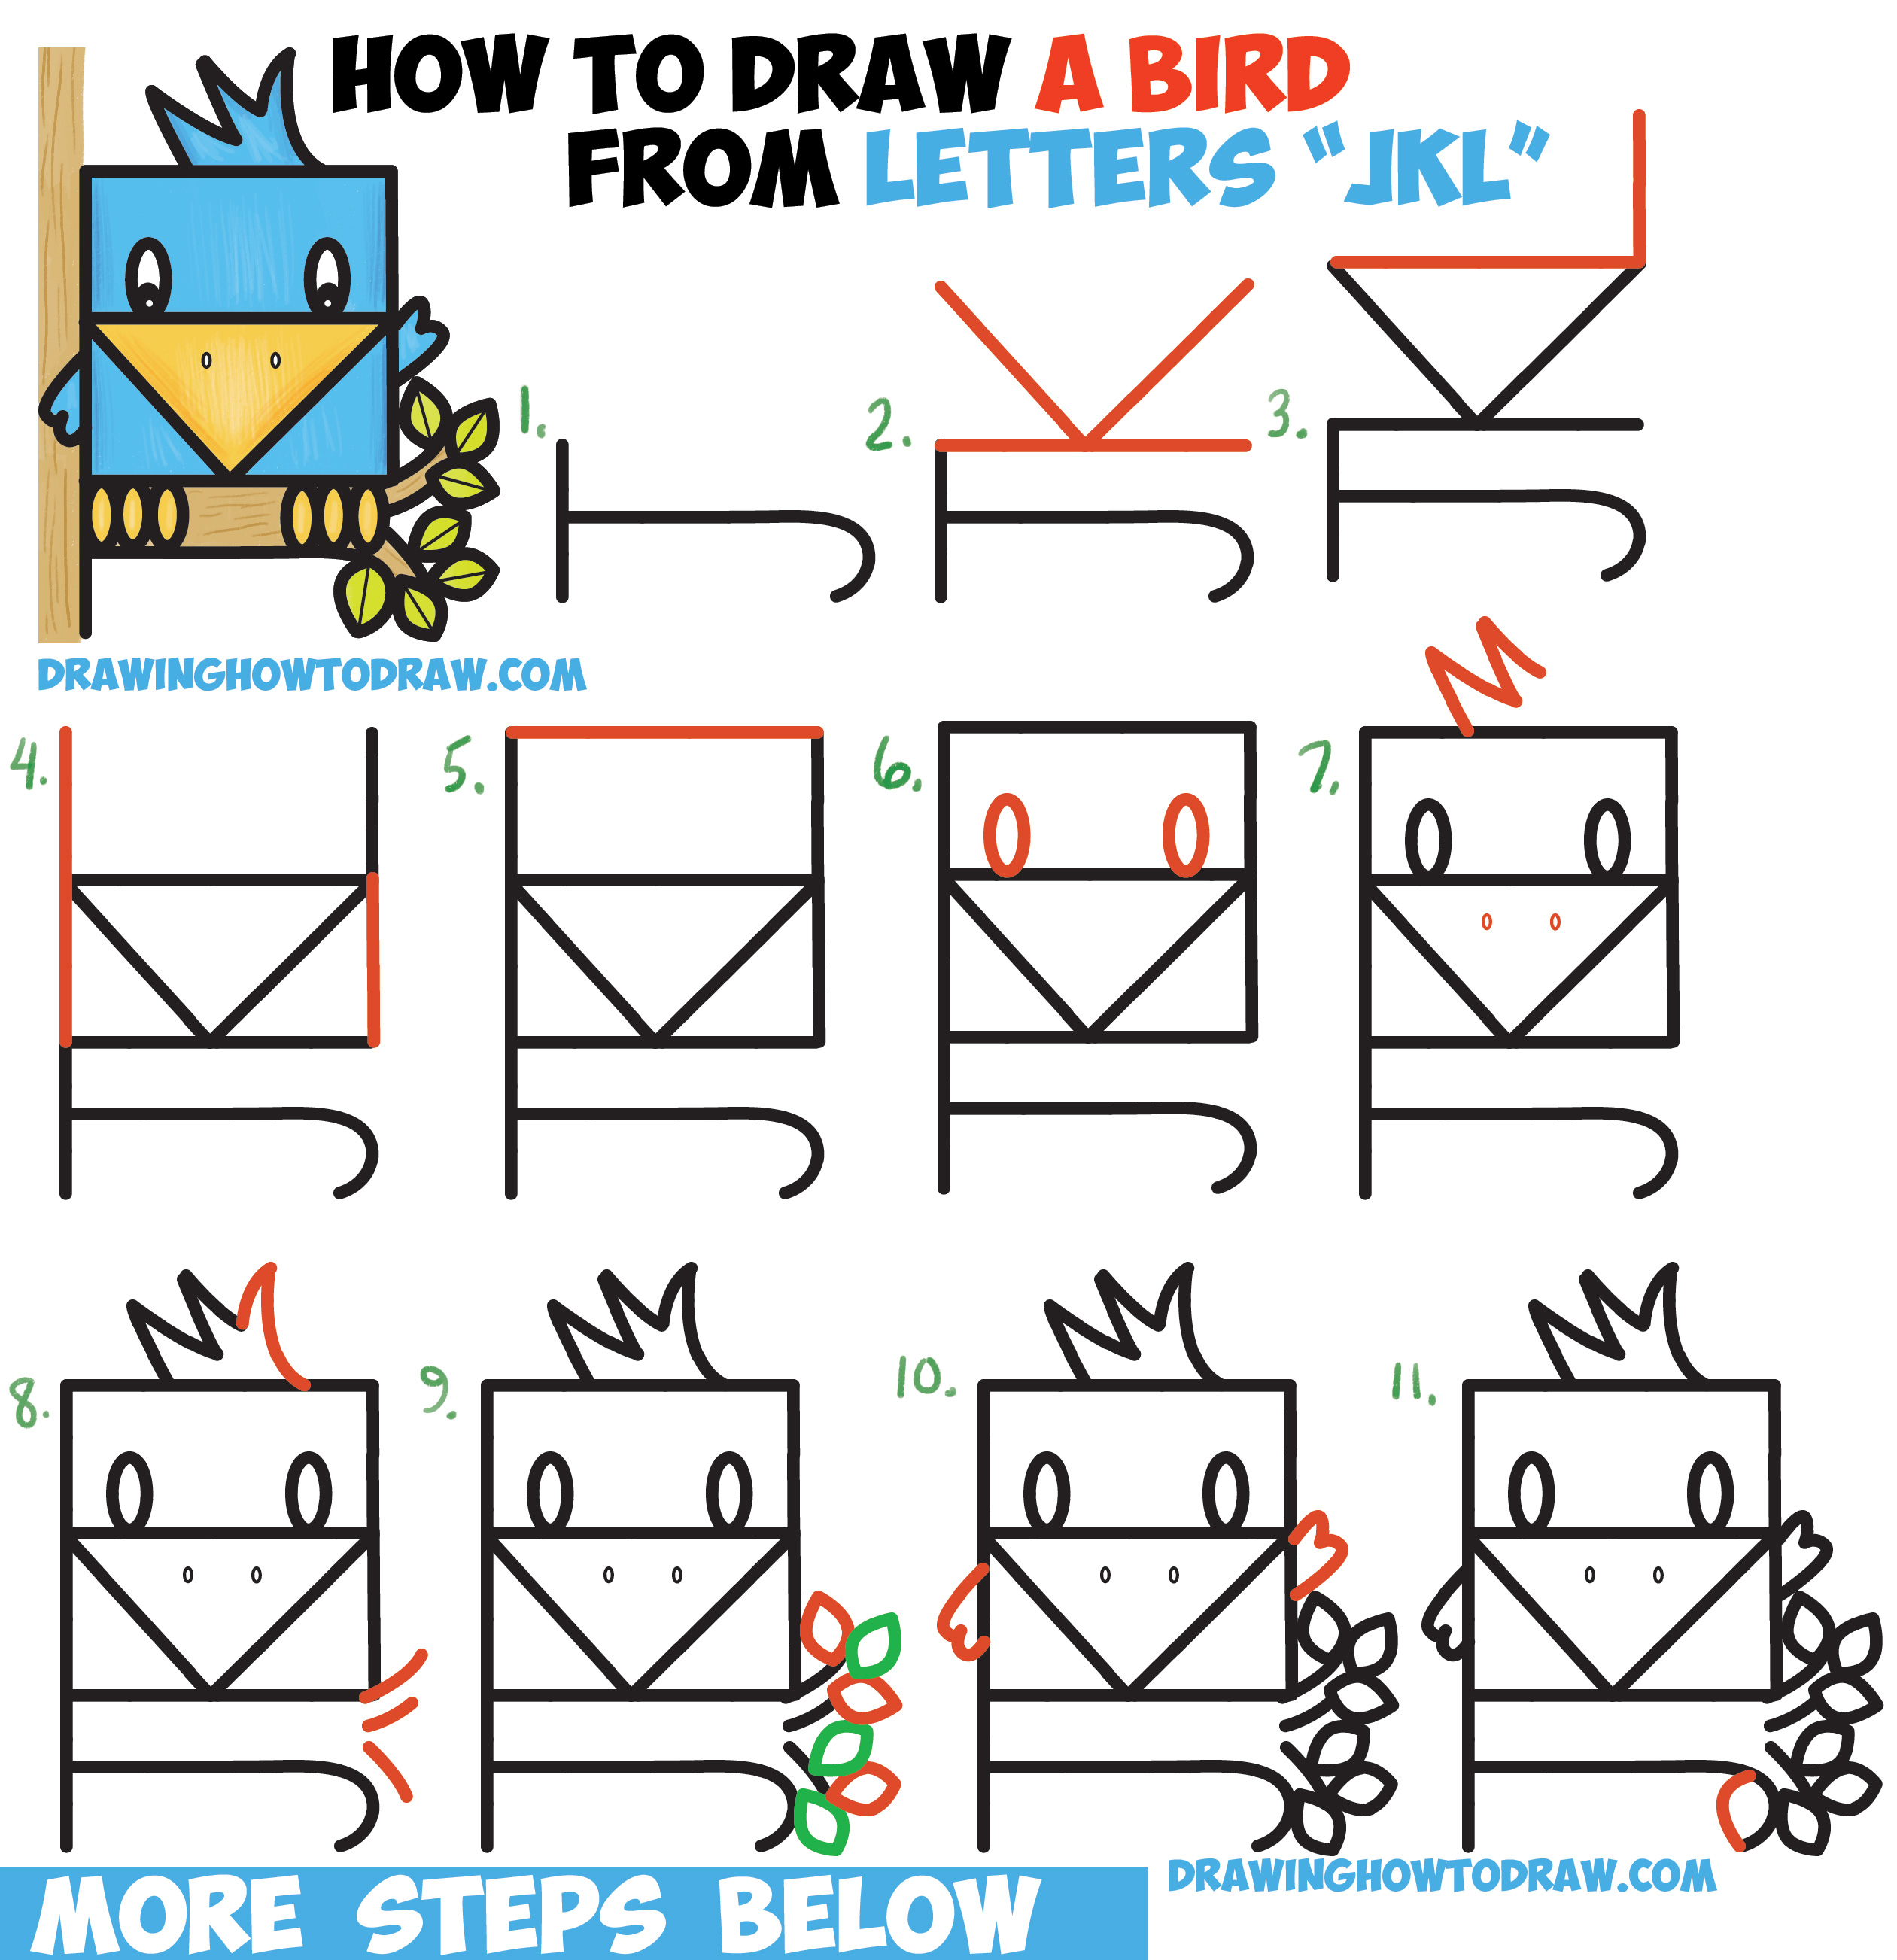 How To Draw A Cute Bird Sitting In A Tree From Alphabet Letters Jkl